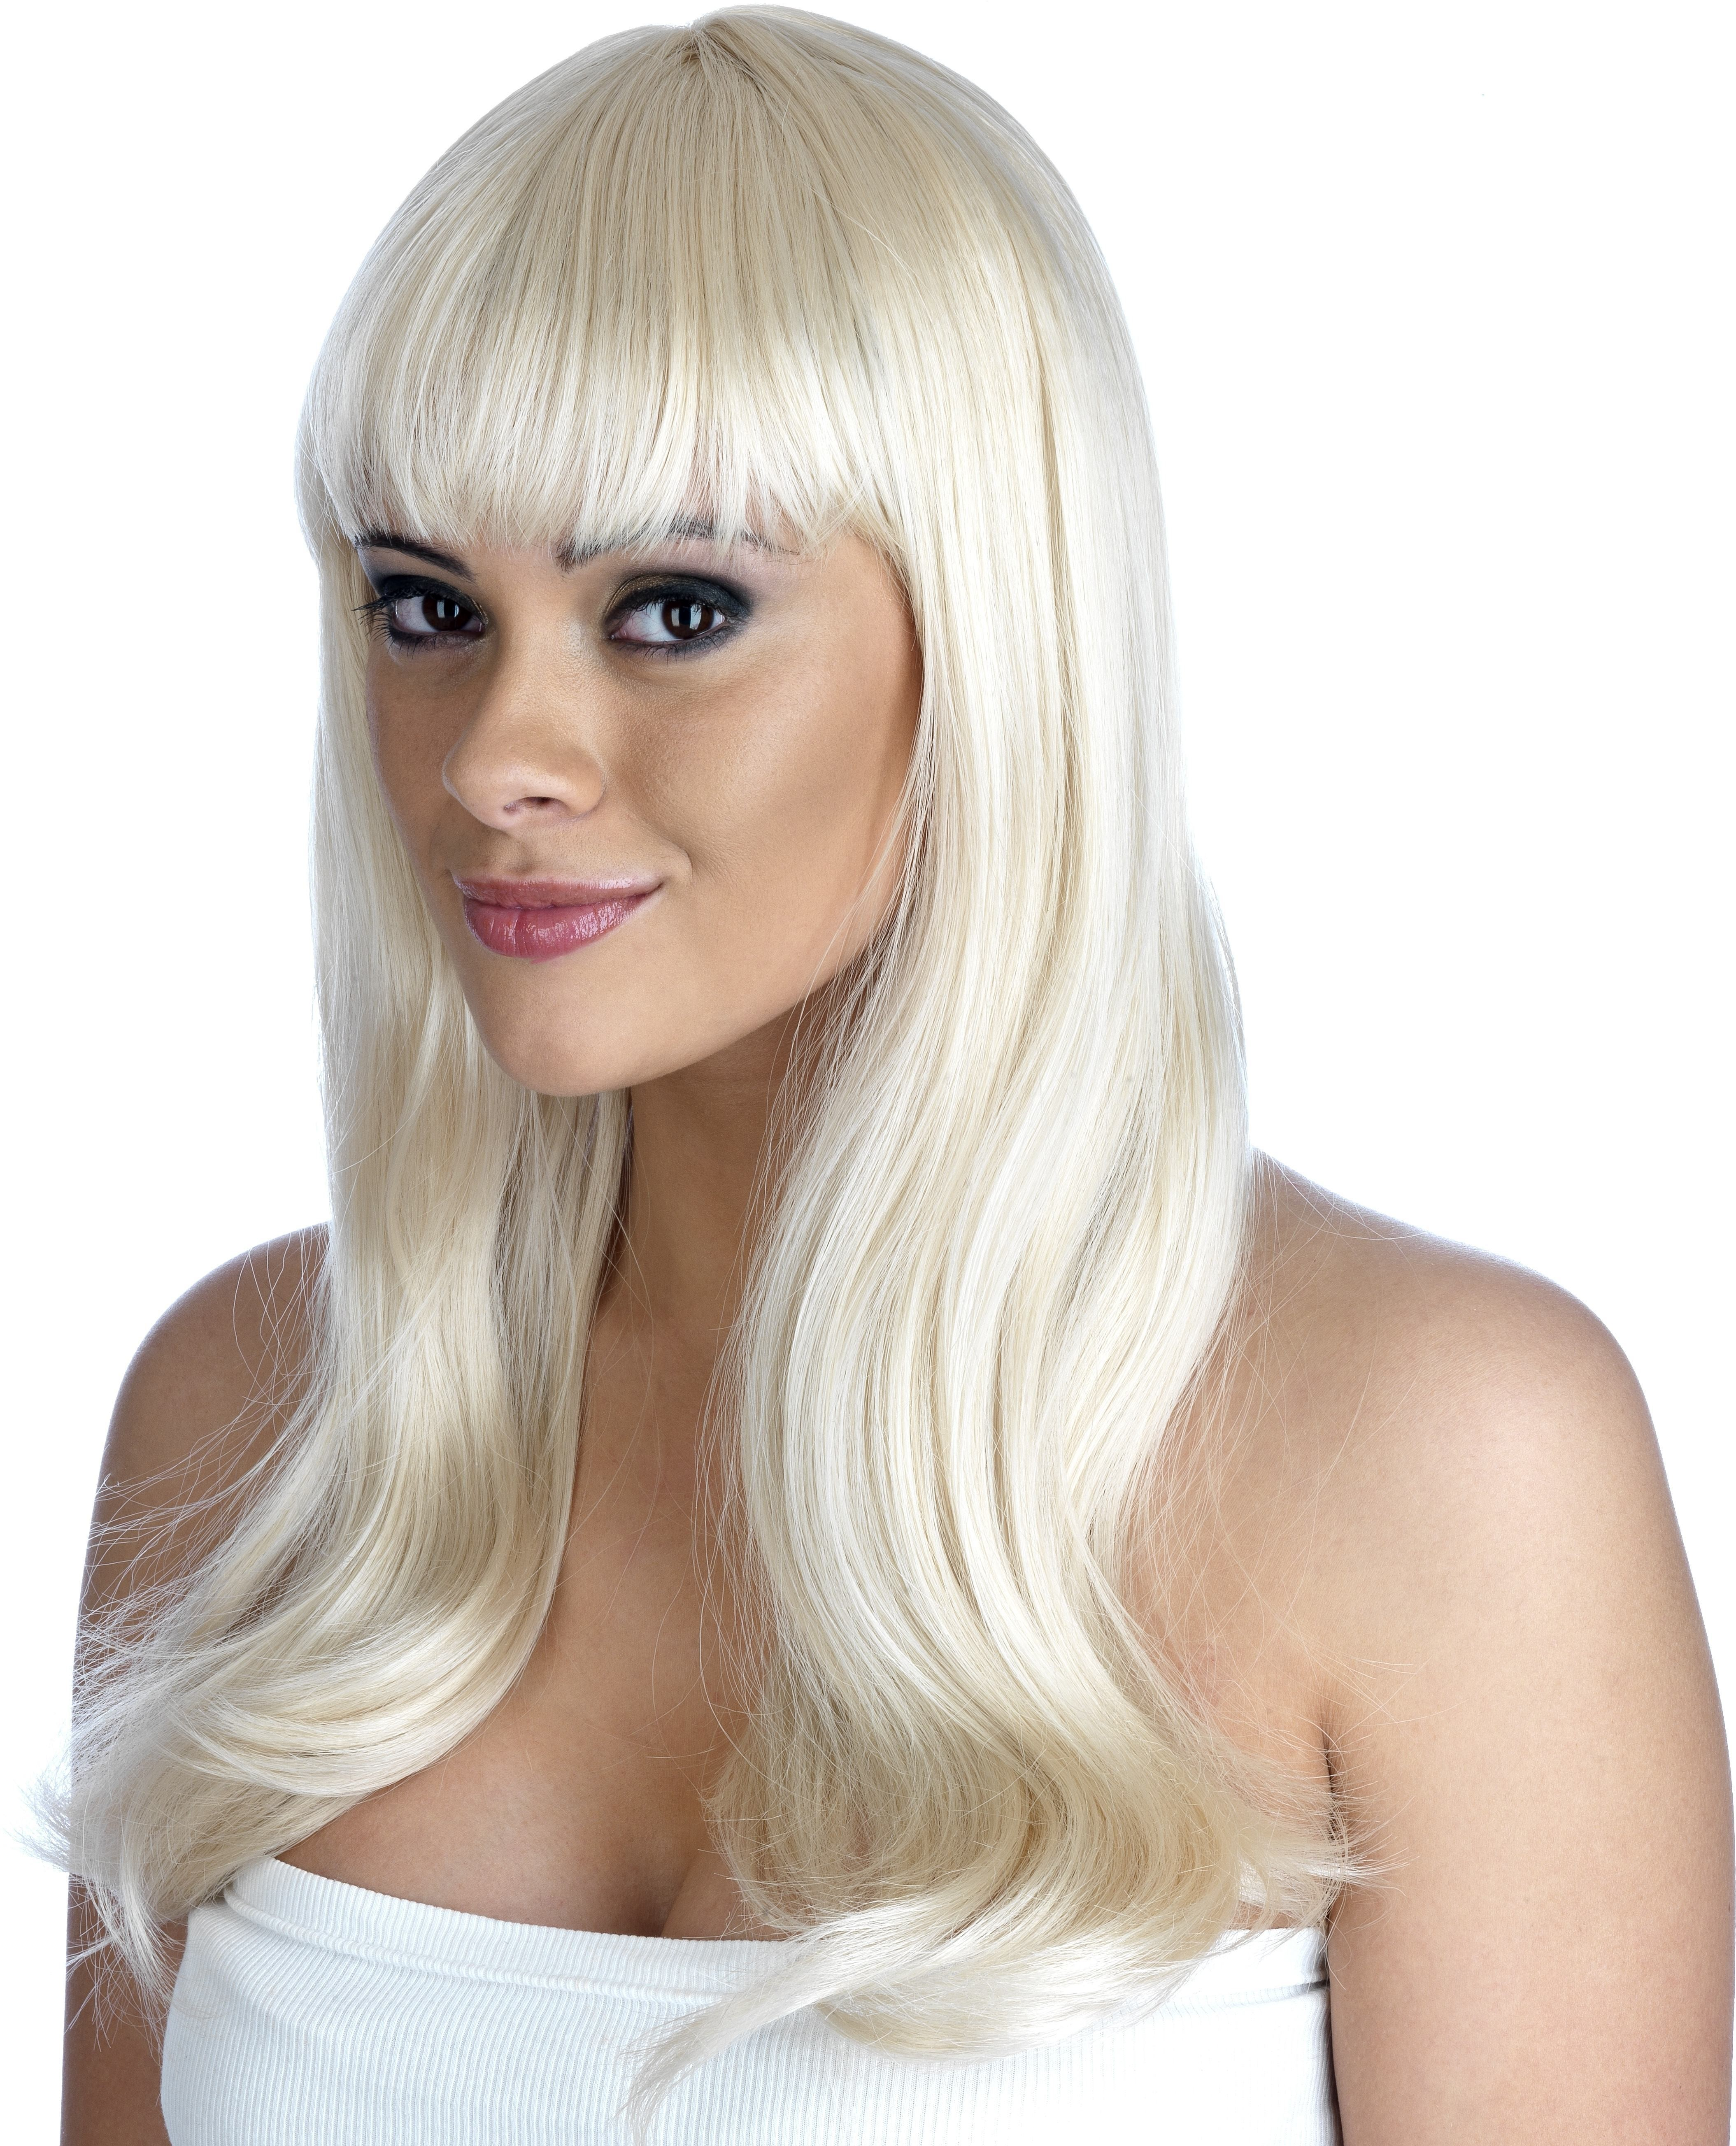 Blonde Fringe Wig (Pet) (110G) One Size Ladies (1920S)